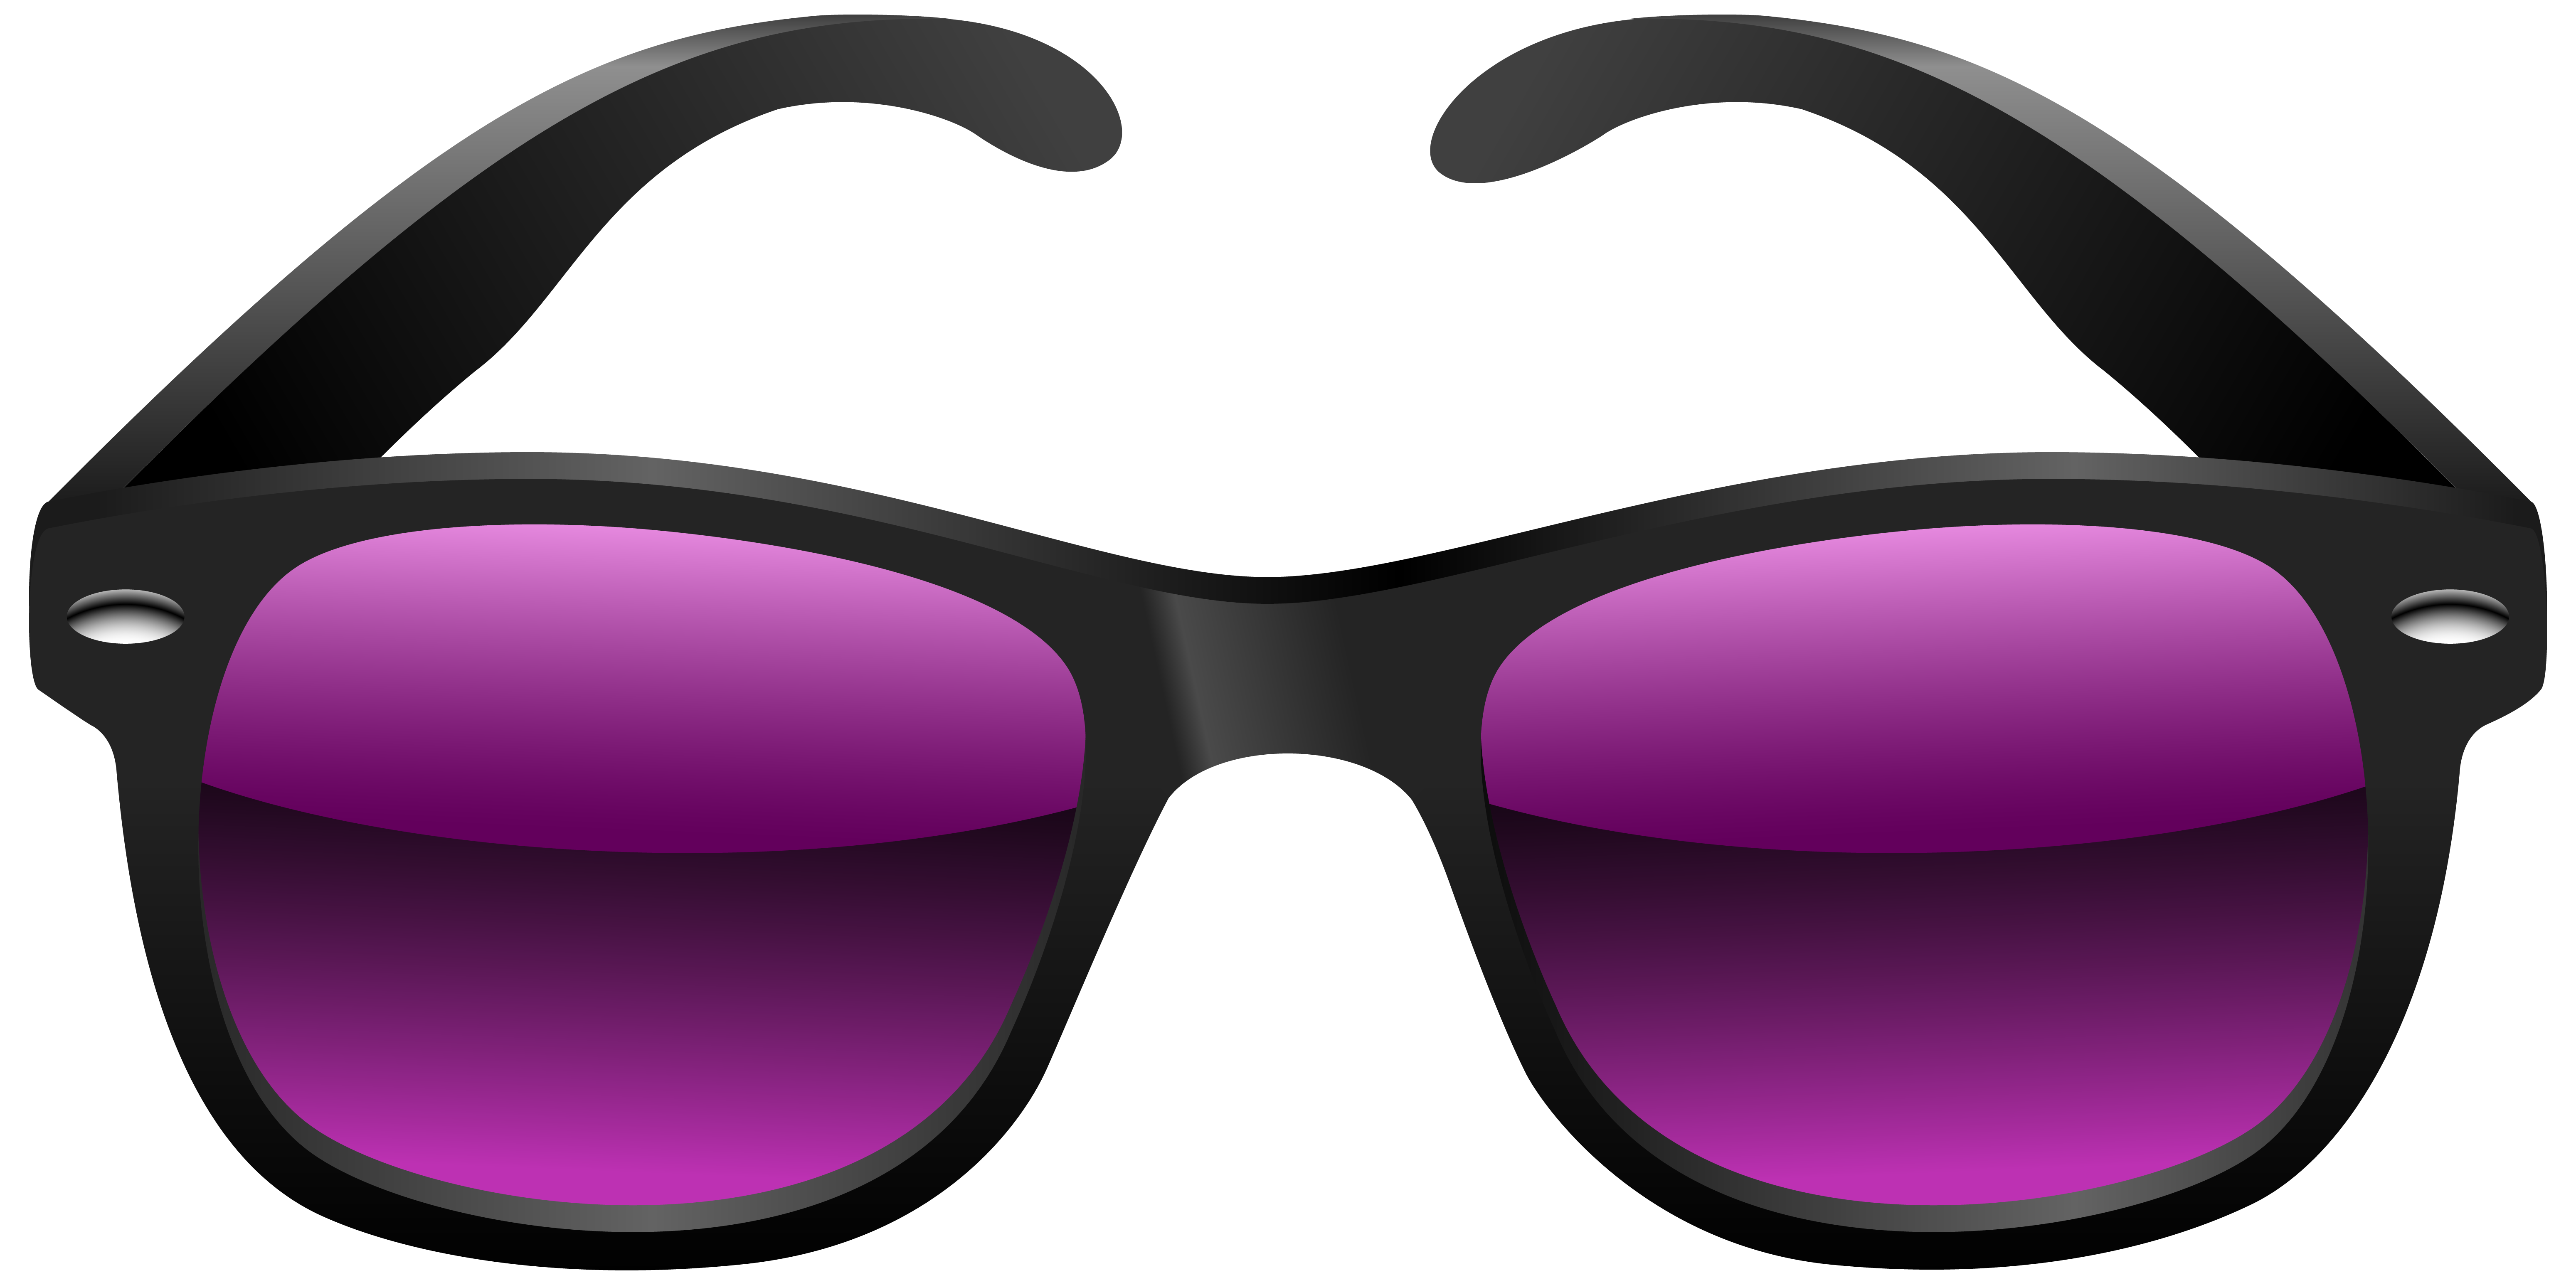 Free Sunglasses Clip Art Free Vector For-Free sunglasses clip art free vector for free download about 5 - Clipartix-6